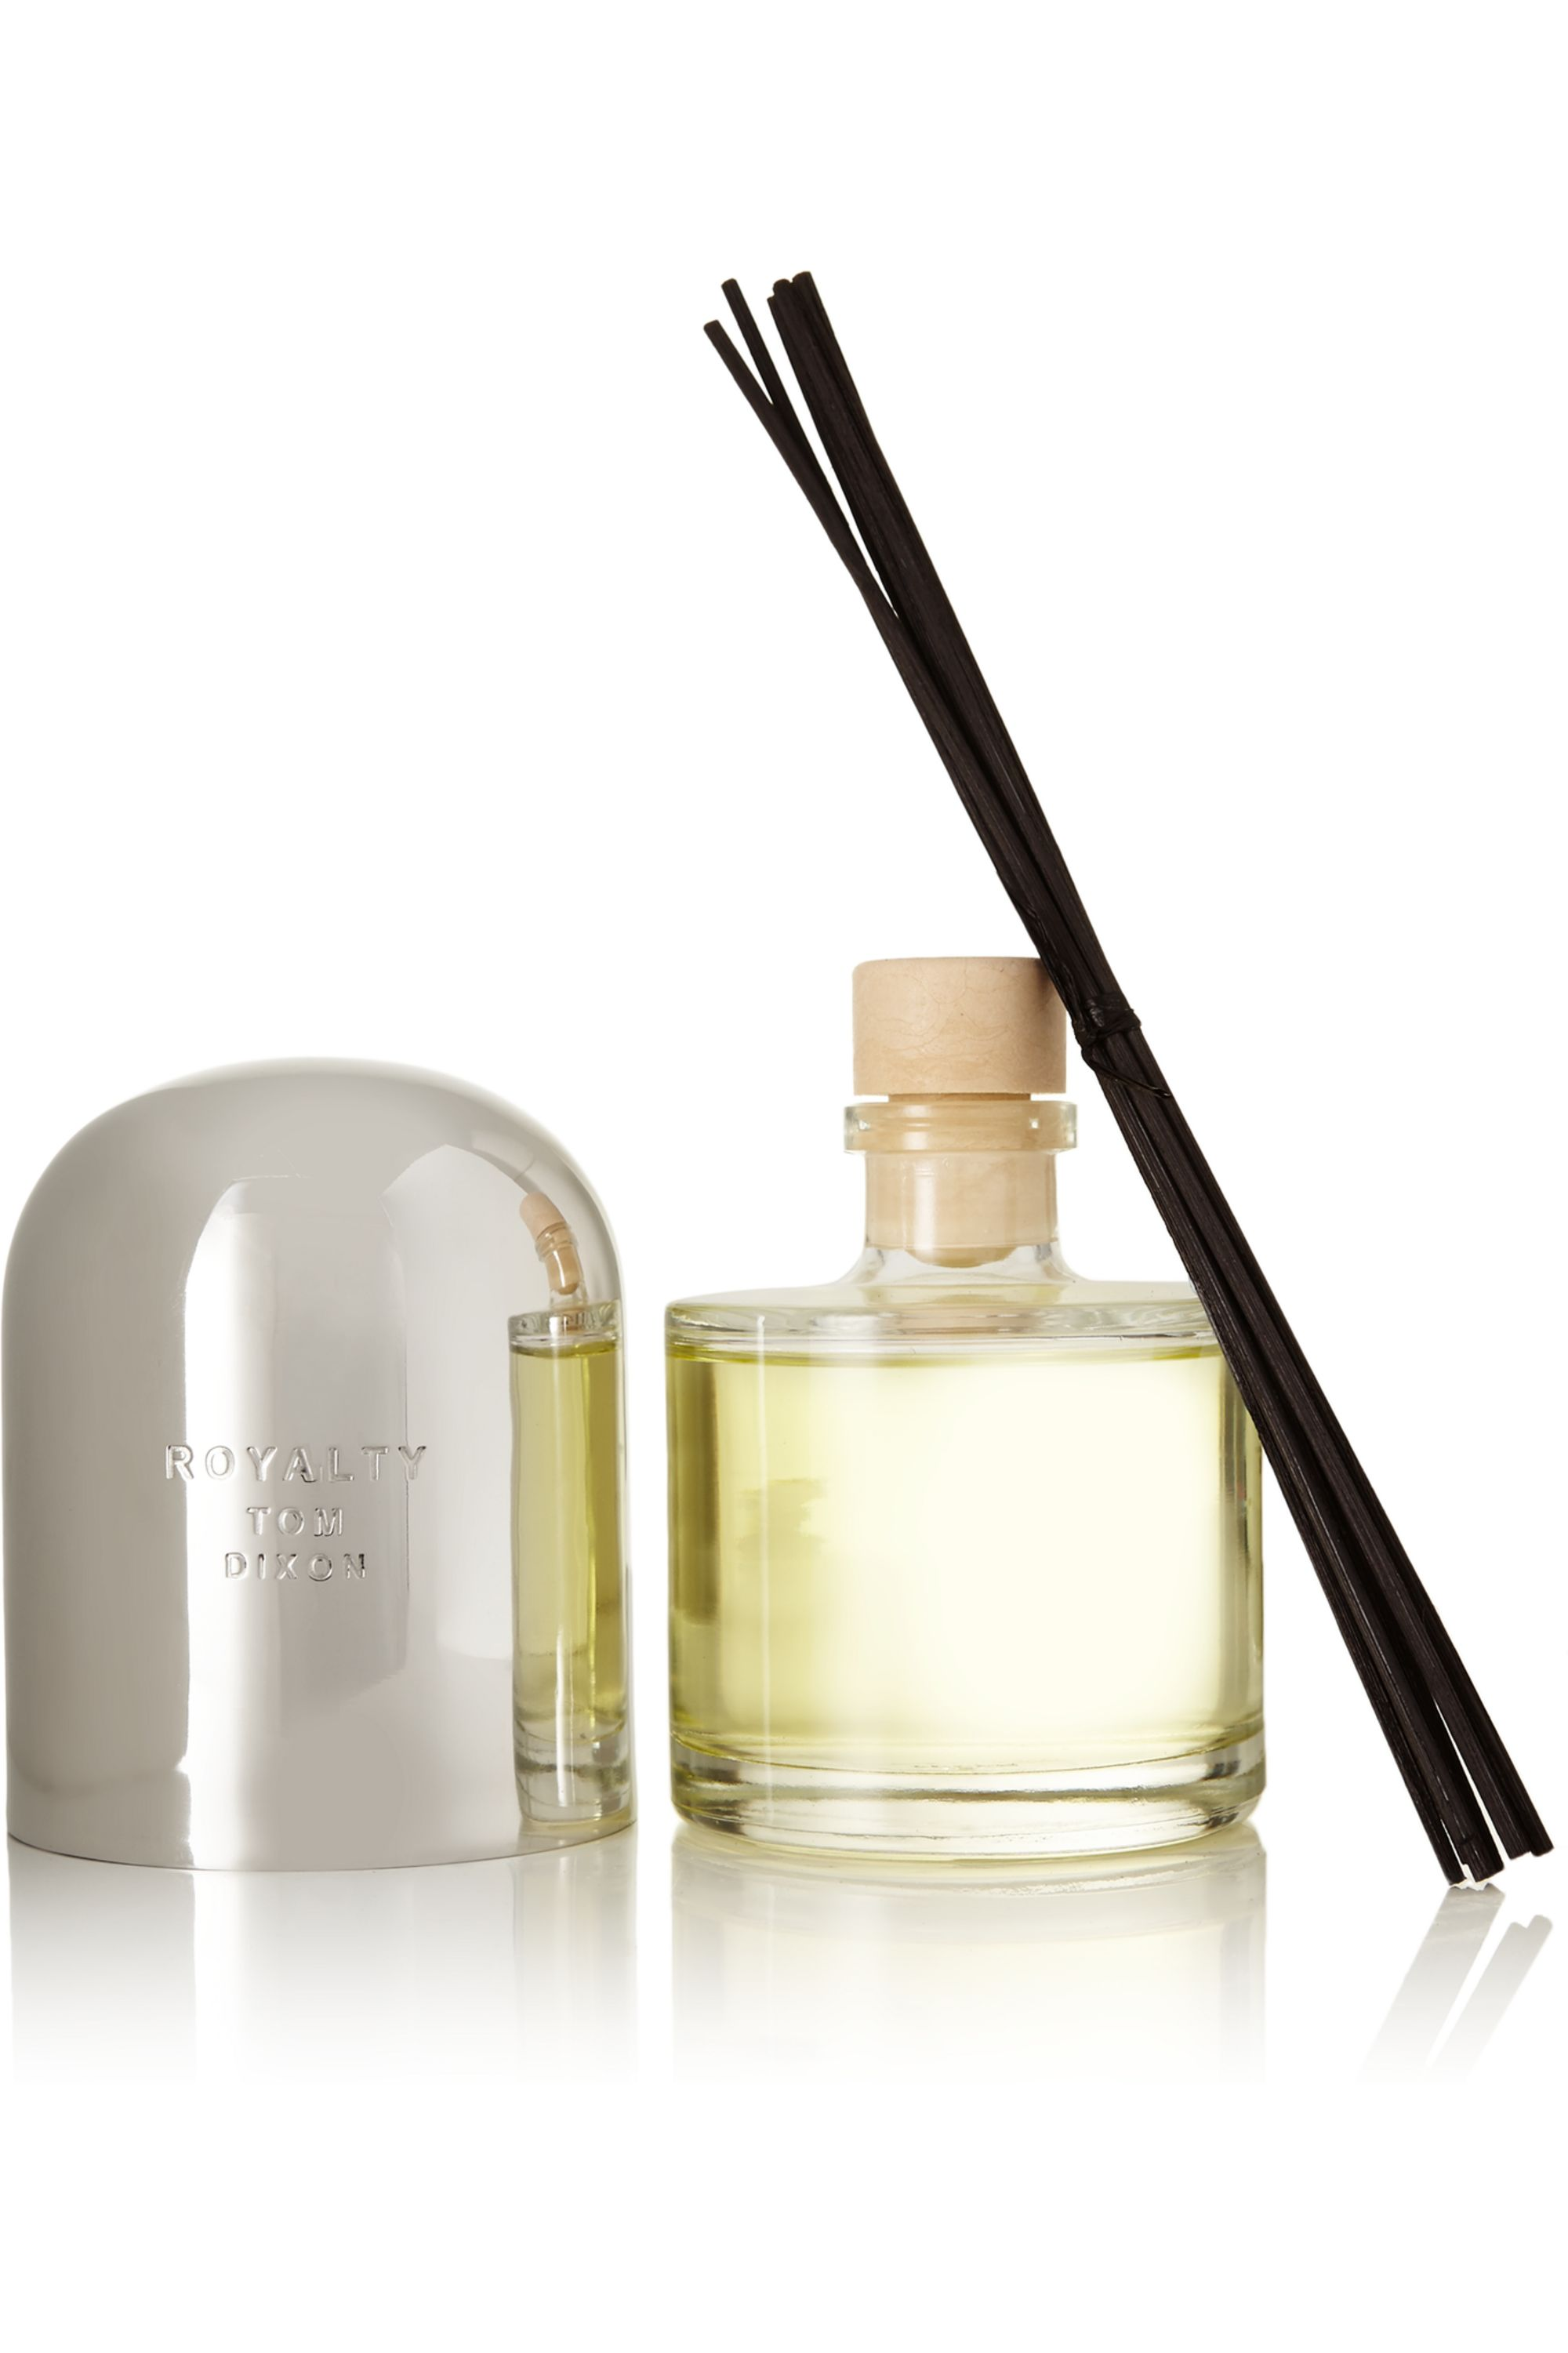 Tom Dixon Royalty Scented Diffuser, 200ml